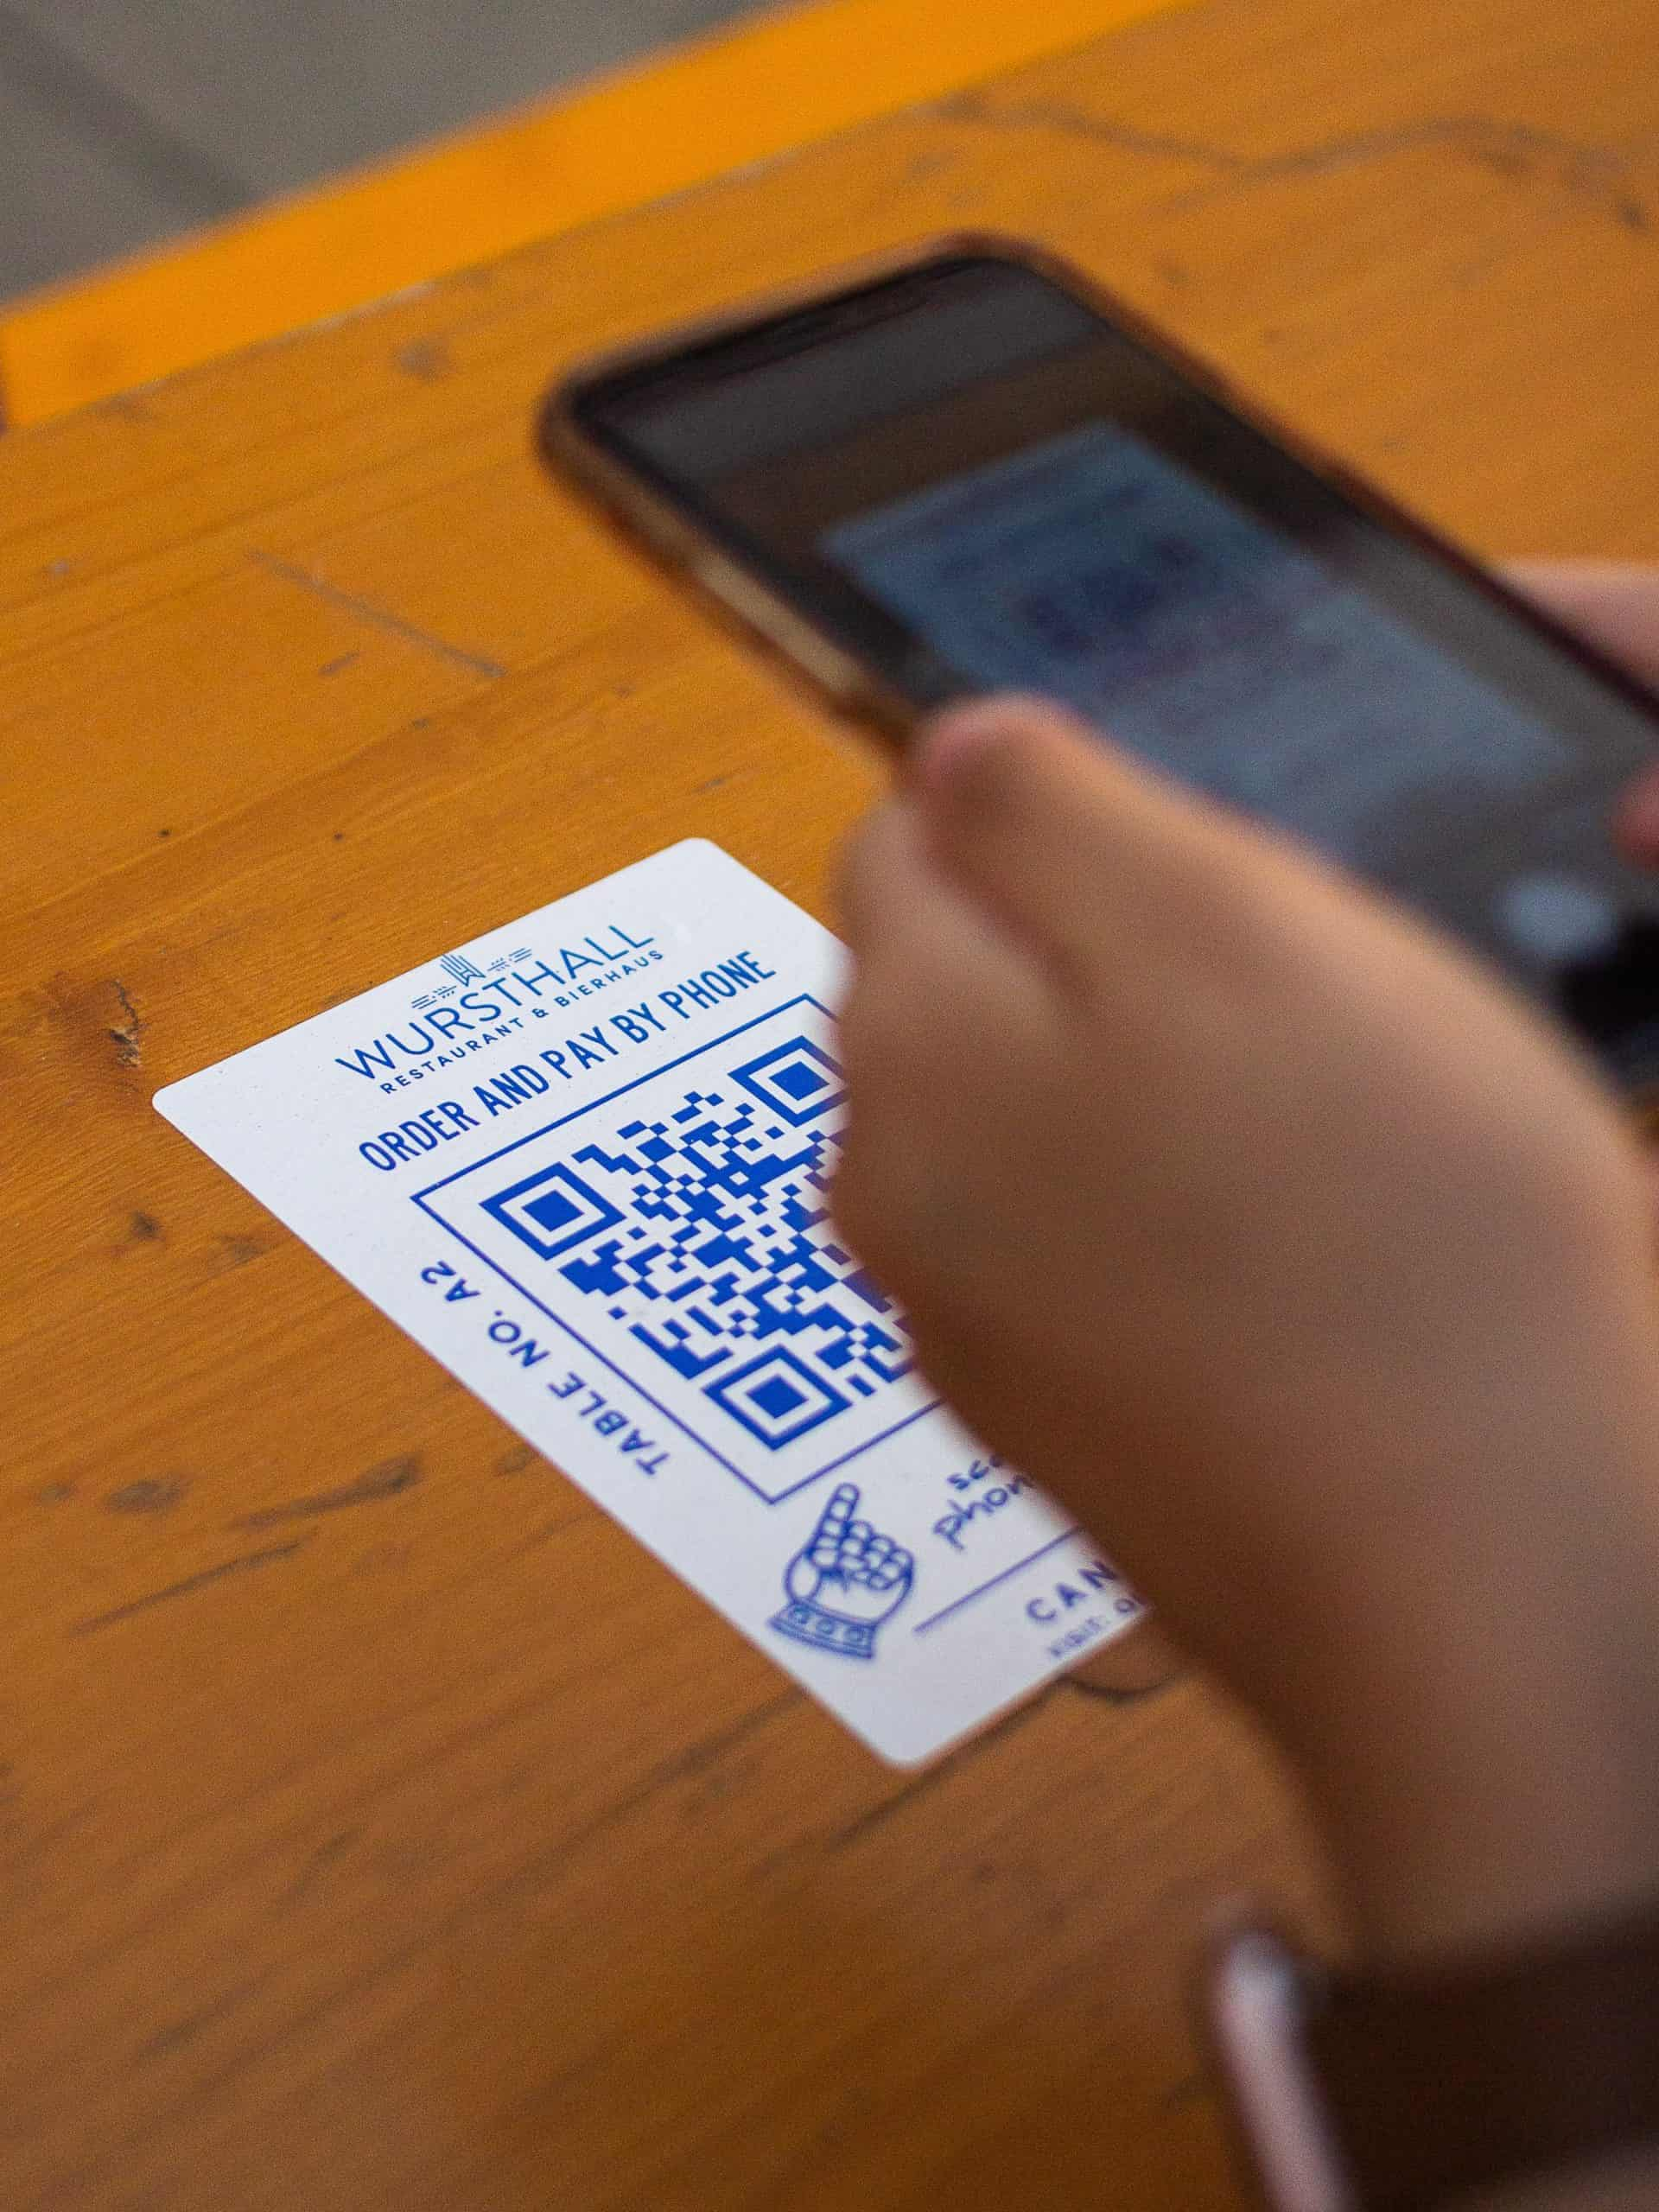 How to scan a QR code using an Android smartphone